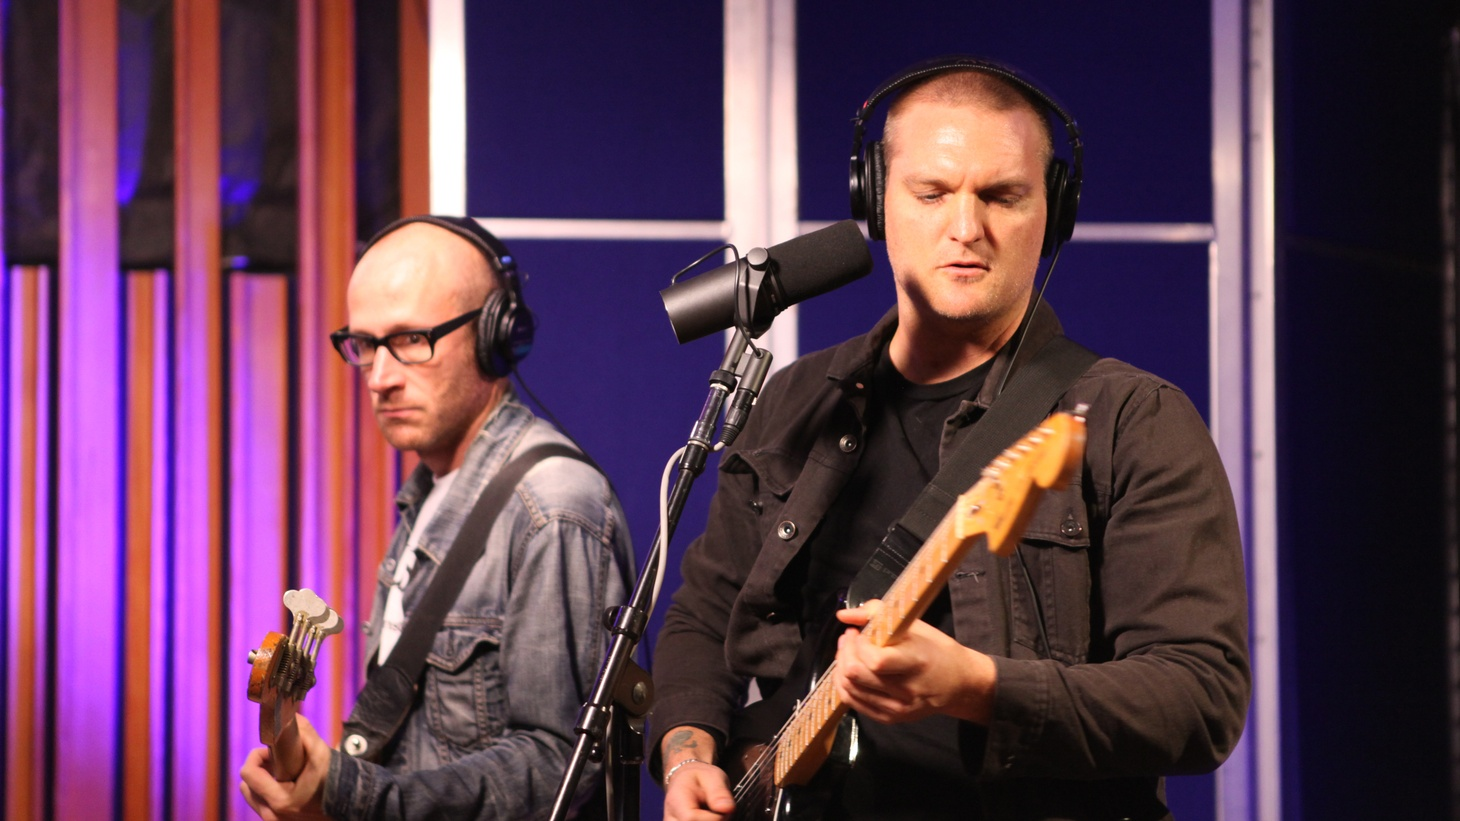 We feature two in-studio performances from L.A.'s own Cold War Kids and the young songstress Zola Jesus.